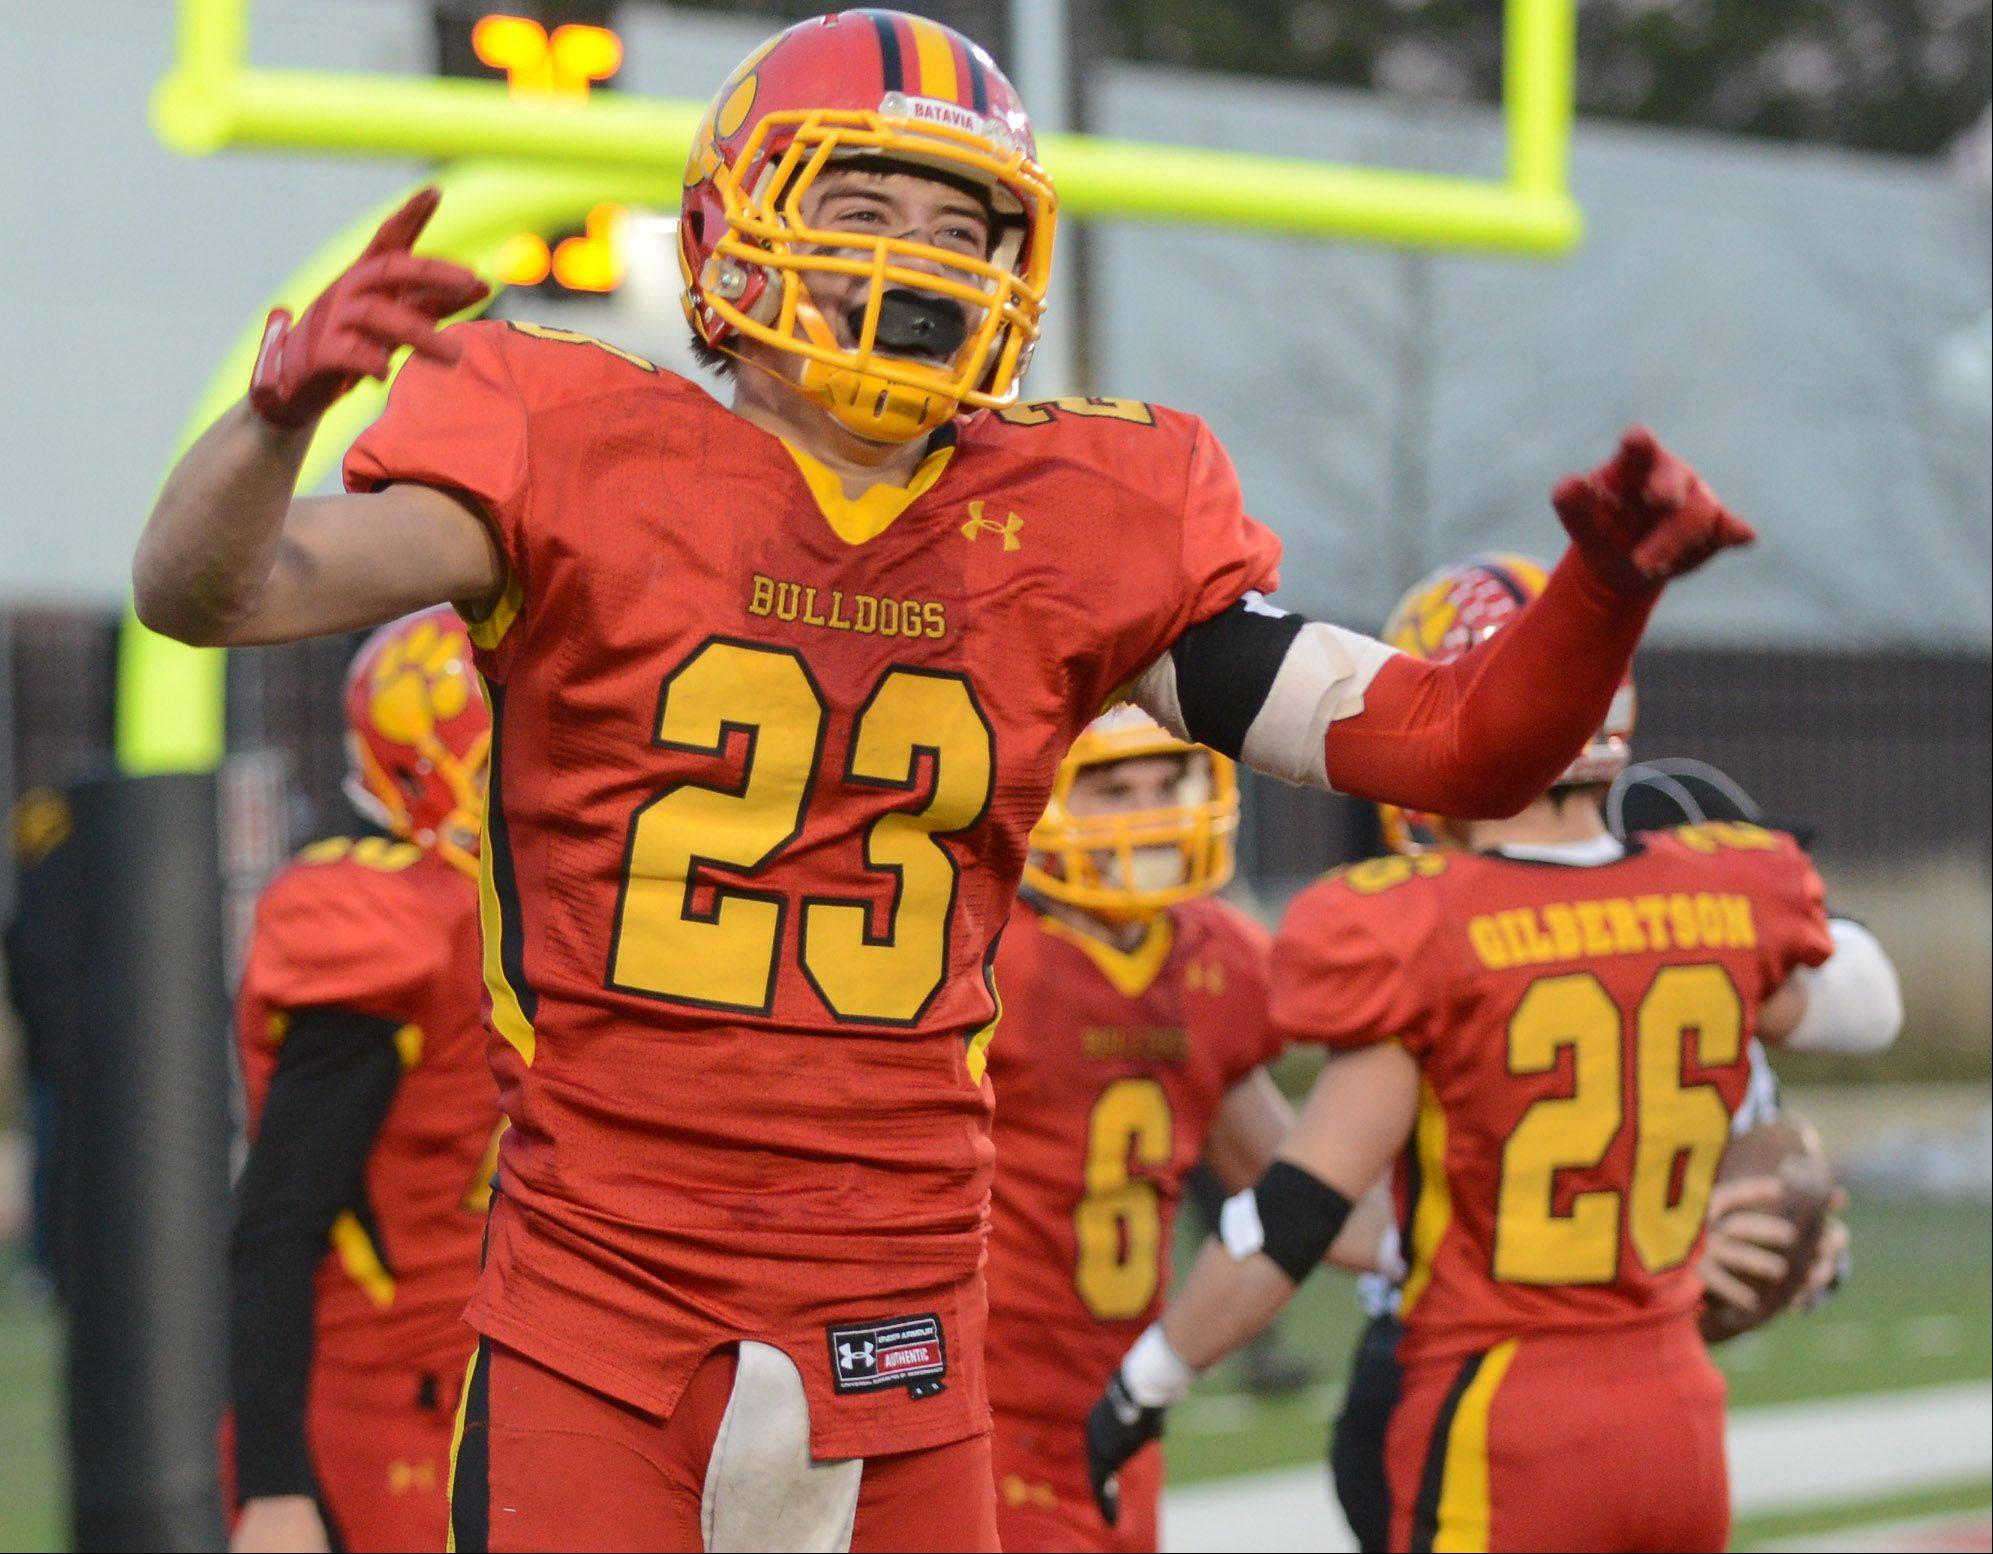 Images from the IHSA 6A football state title game between Batavia and Richards Saturday, November 30, 2013.